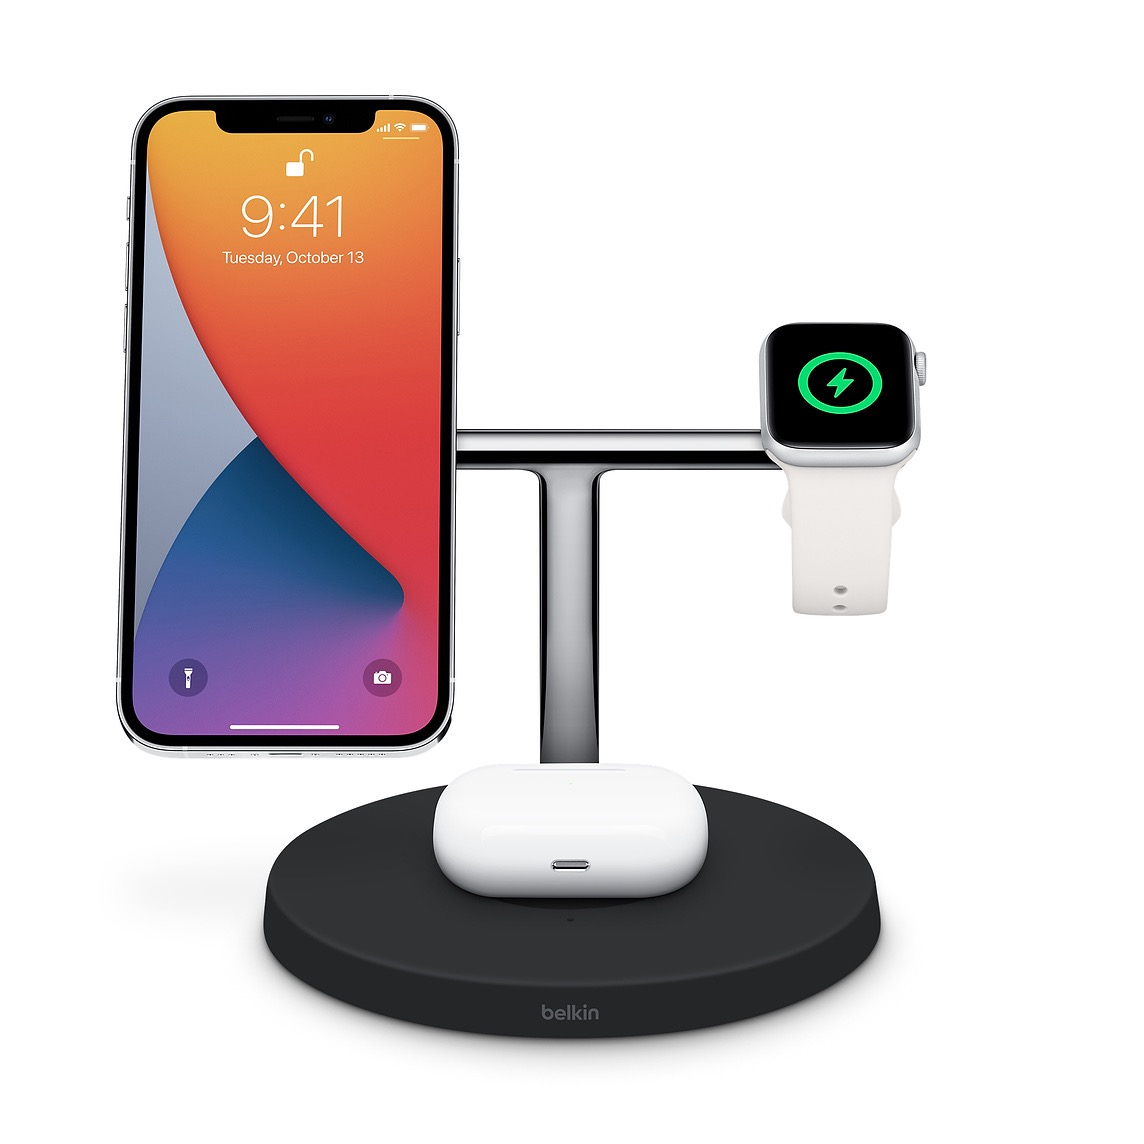 Apple、「Belkin BOOST↑CHARGE PRO 3-in-1 Wireless Charger with MagSafe」を販売開始